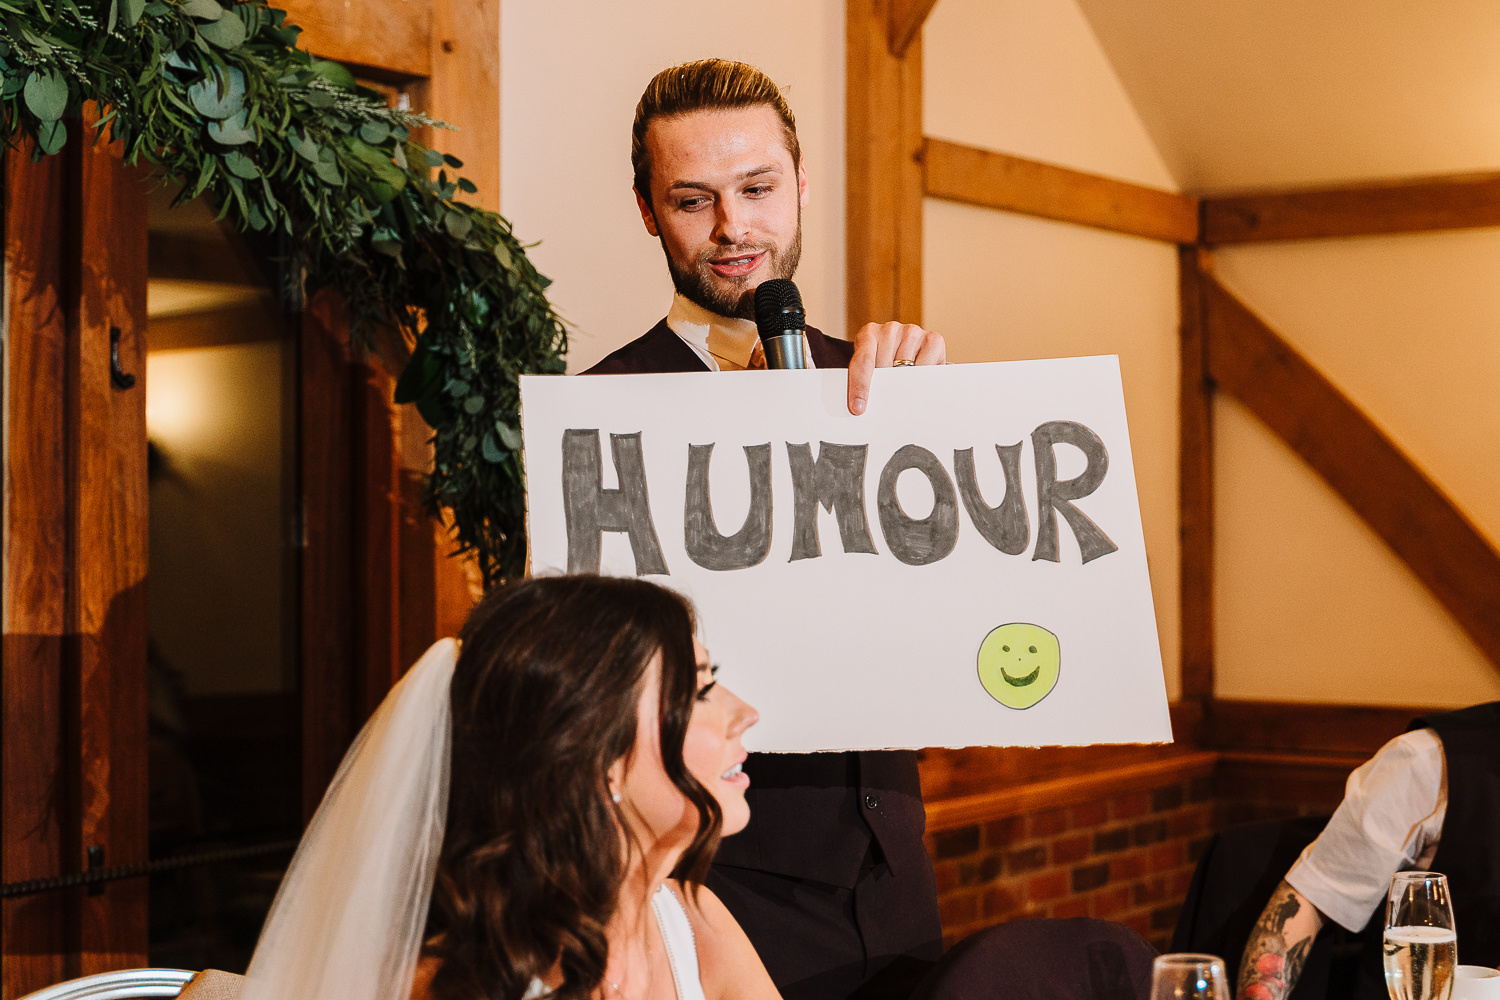 Groom holding up a humour sign